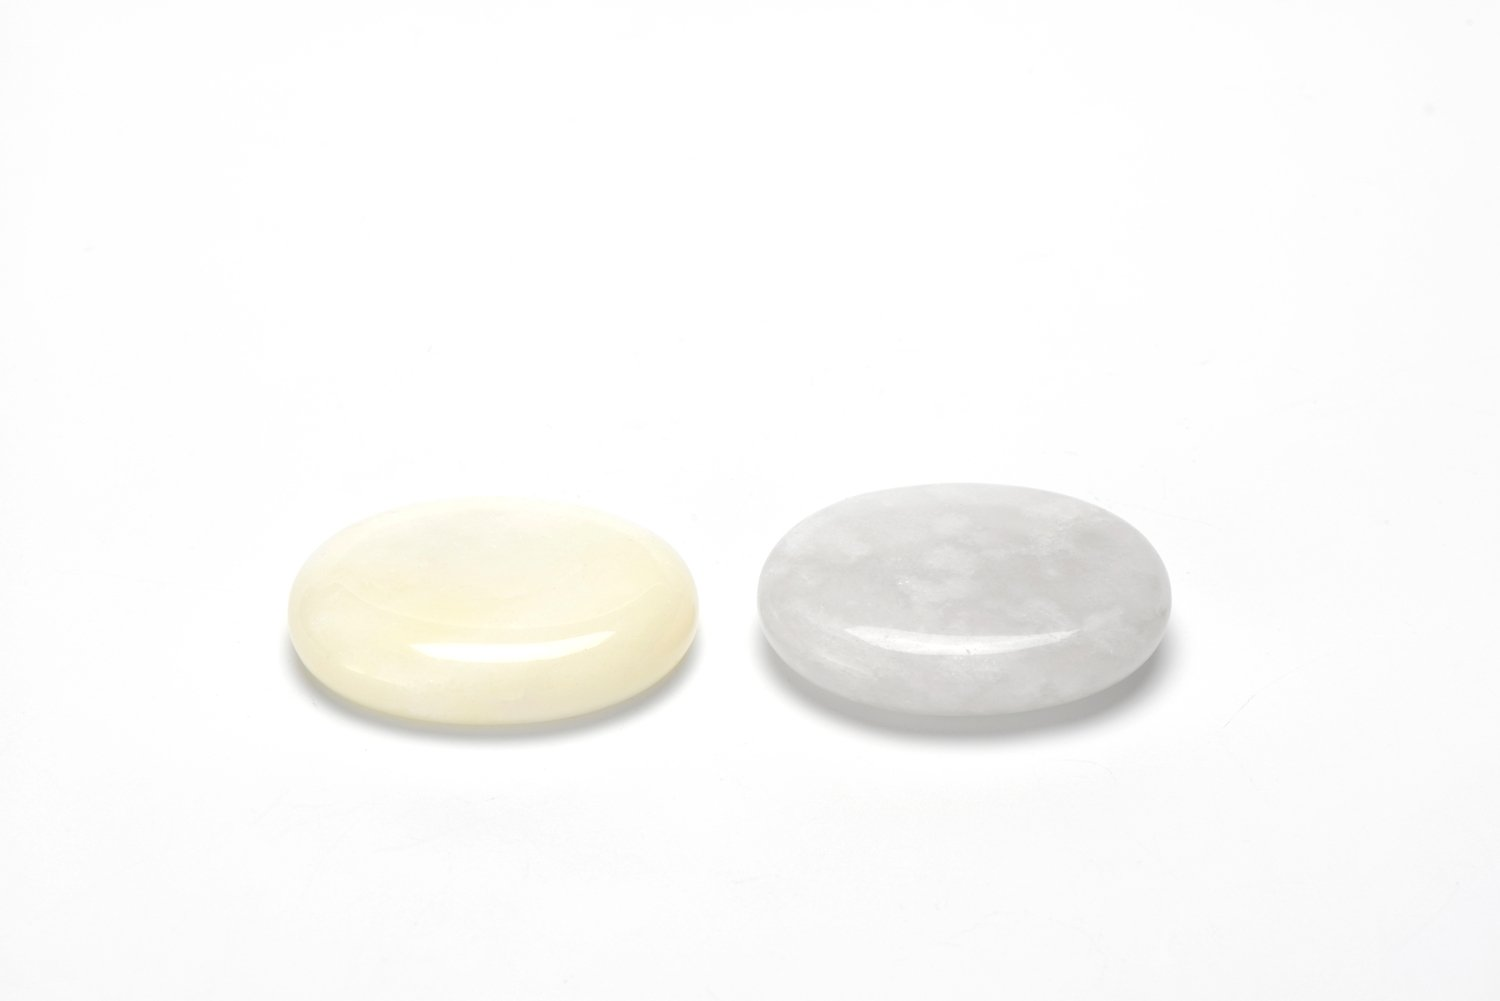 Aboval 2 Pcs Professional Large Massage Stones Natural Marble Hot & Cold Stone for Spa, Massage Therapy (3.14 x 2.36 in) by Aboval (Image #3)